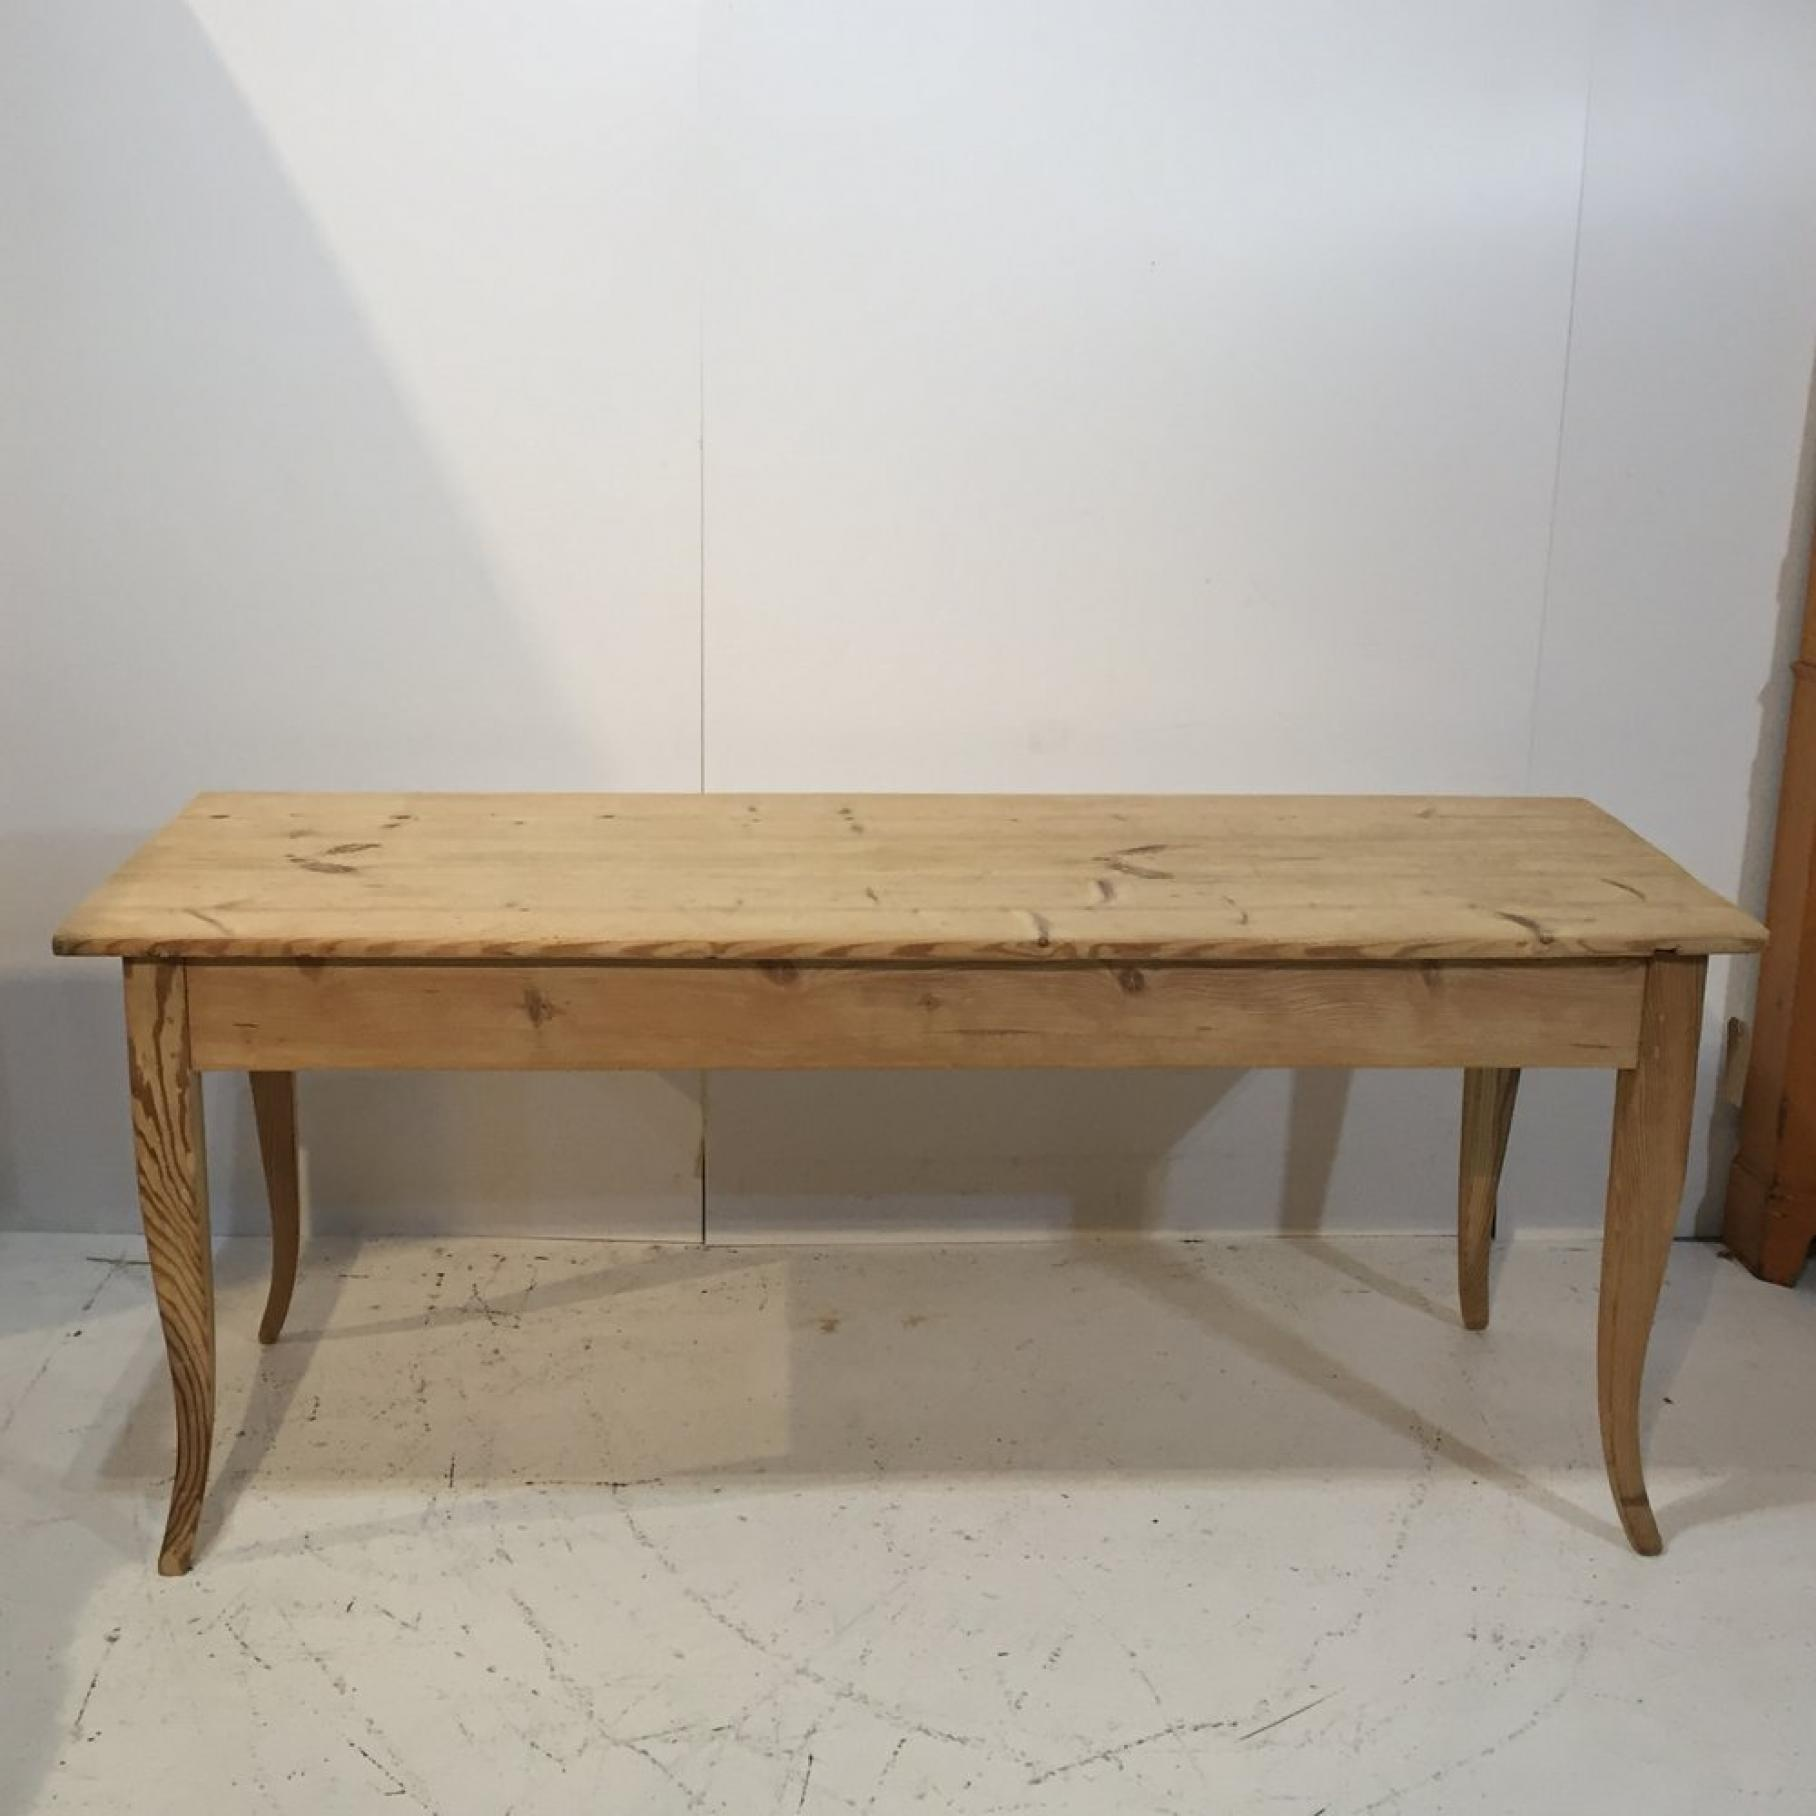 6ft Narrow French Antique Pine Table